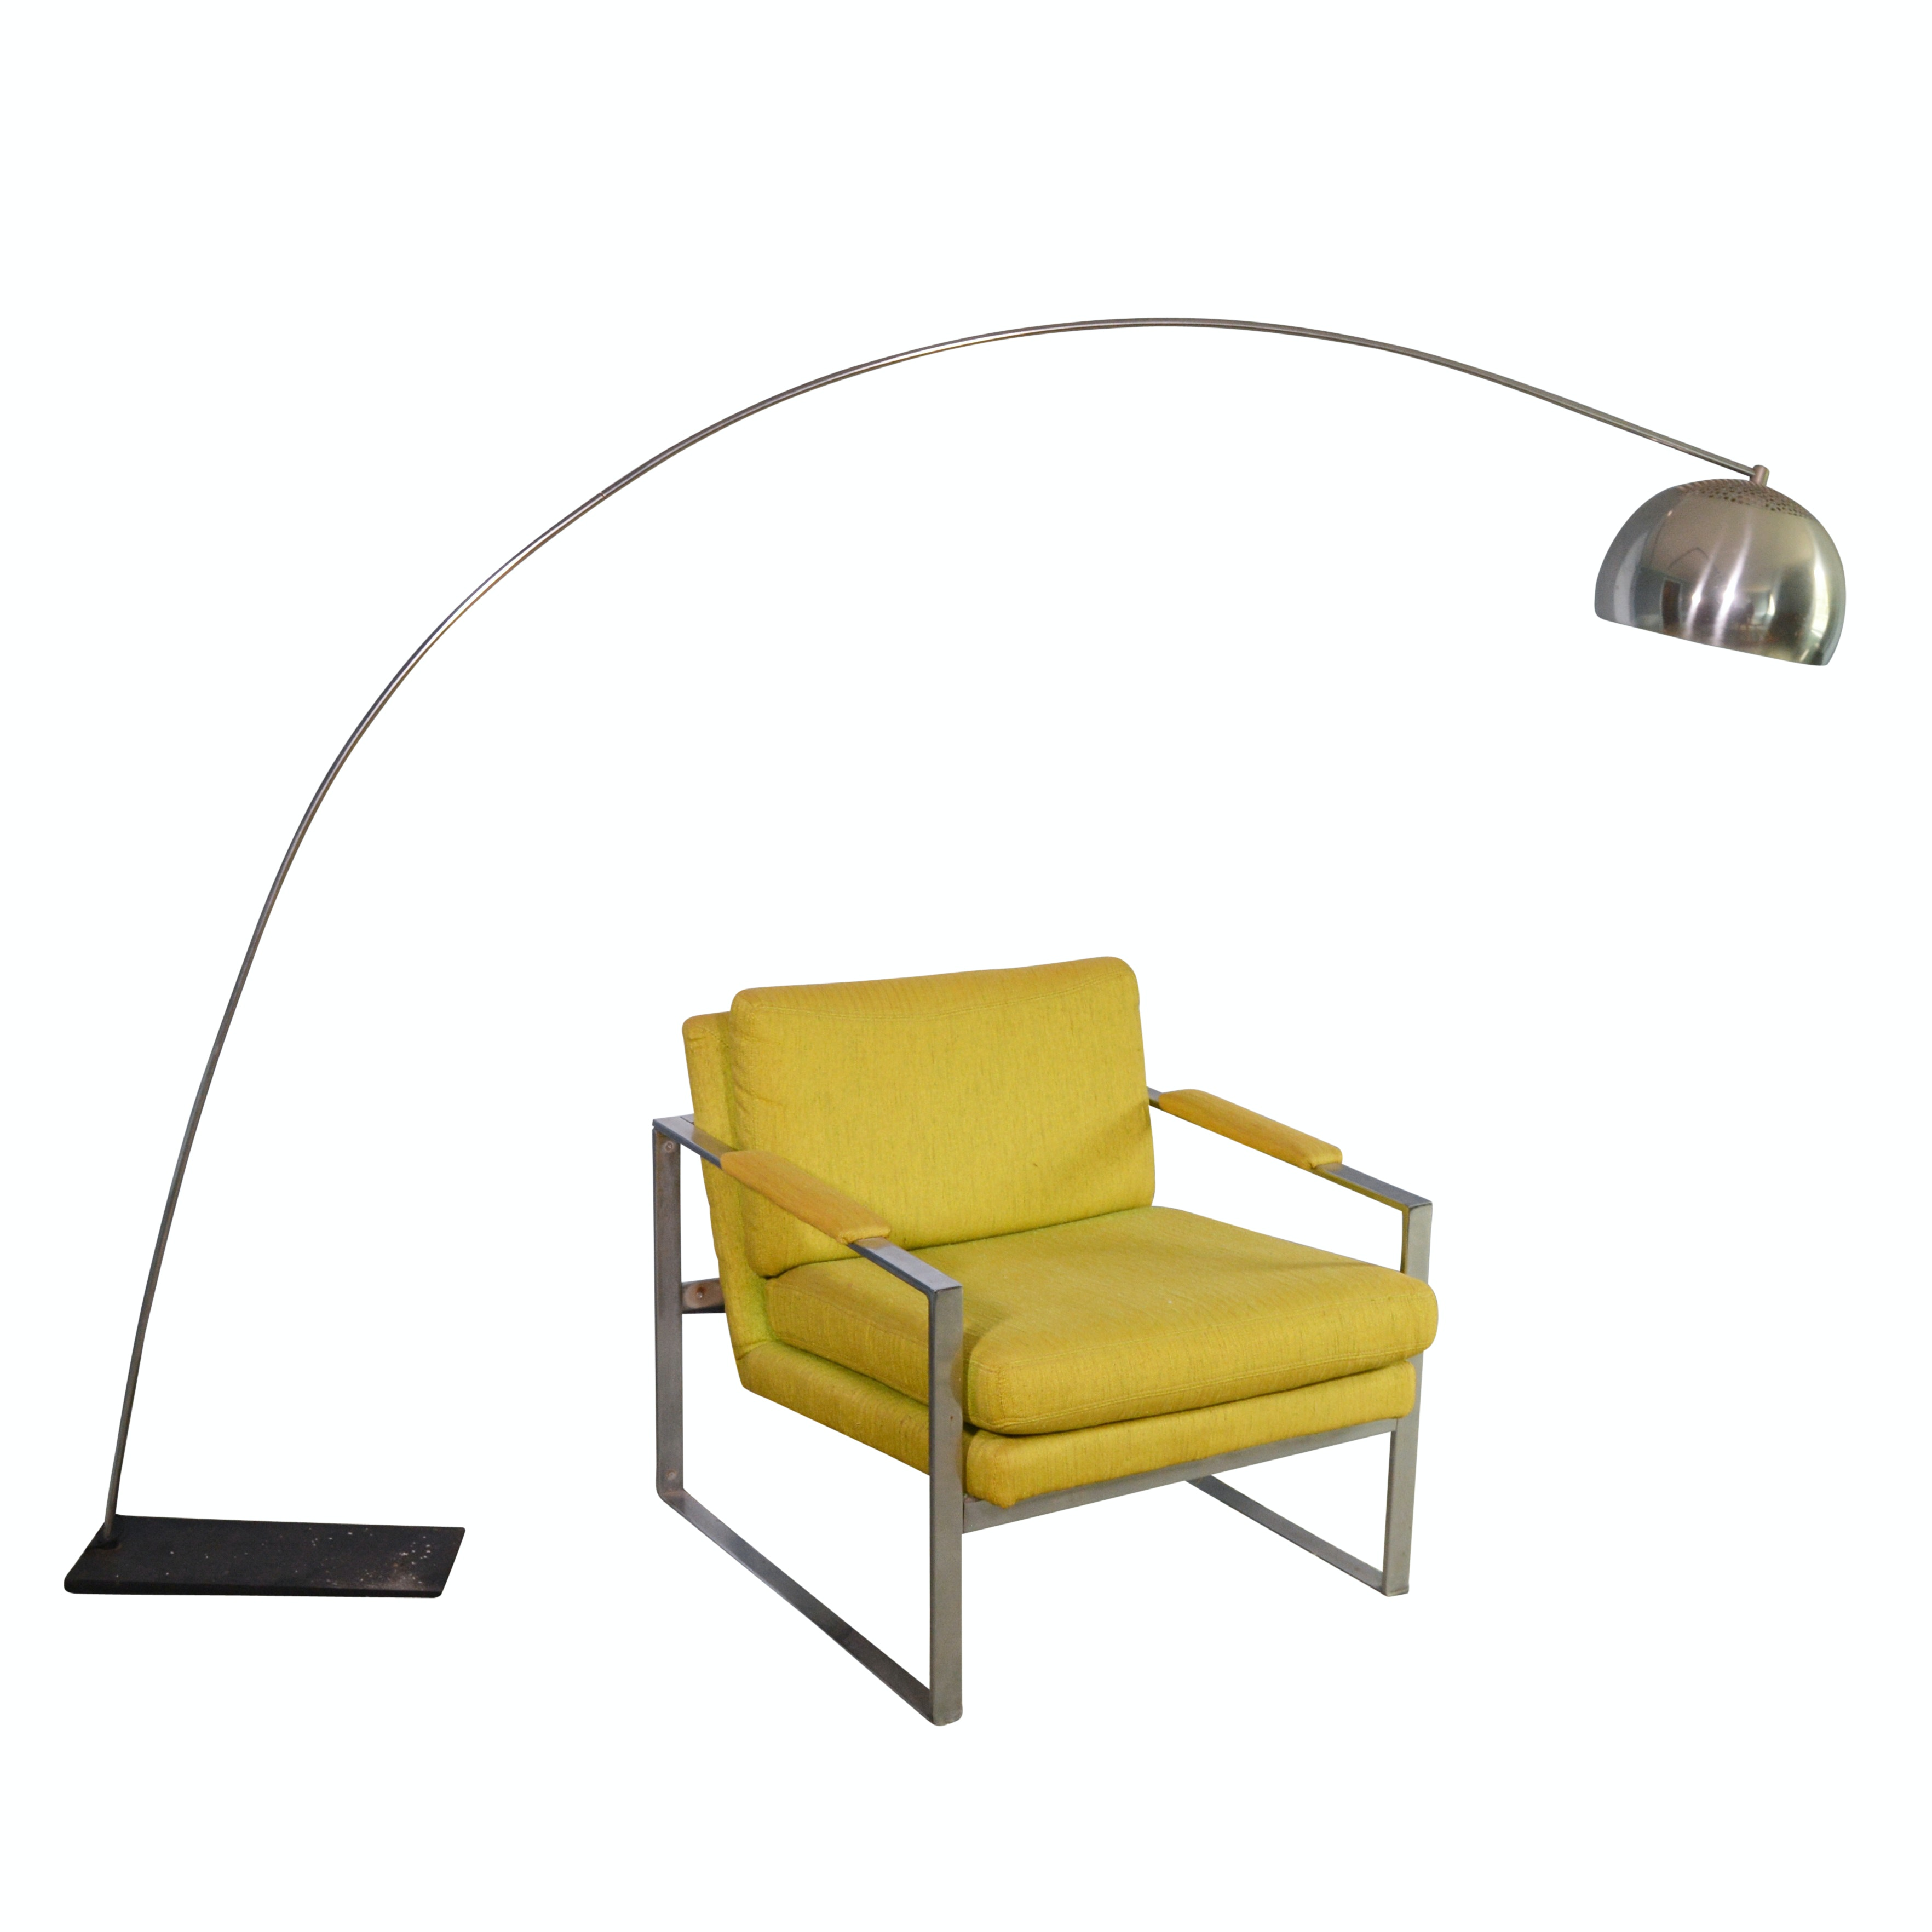 Mid Century Modern Upholstered Metal Armchair & Arc Floor Lamp, Mid-20th Century